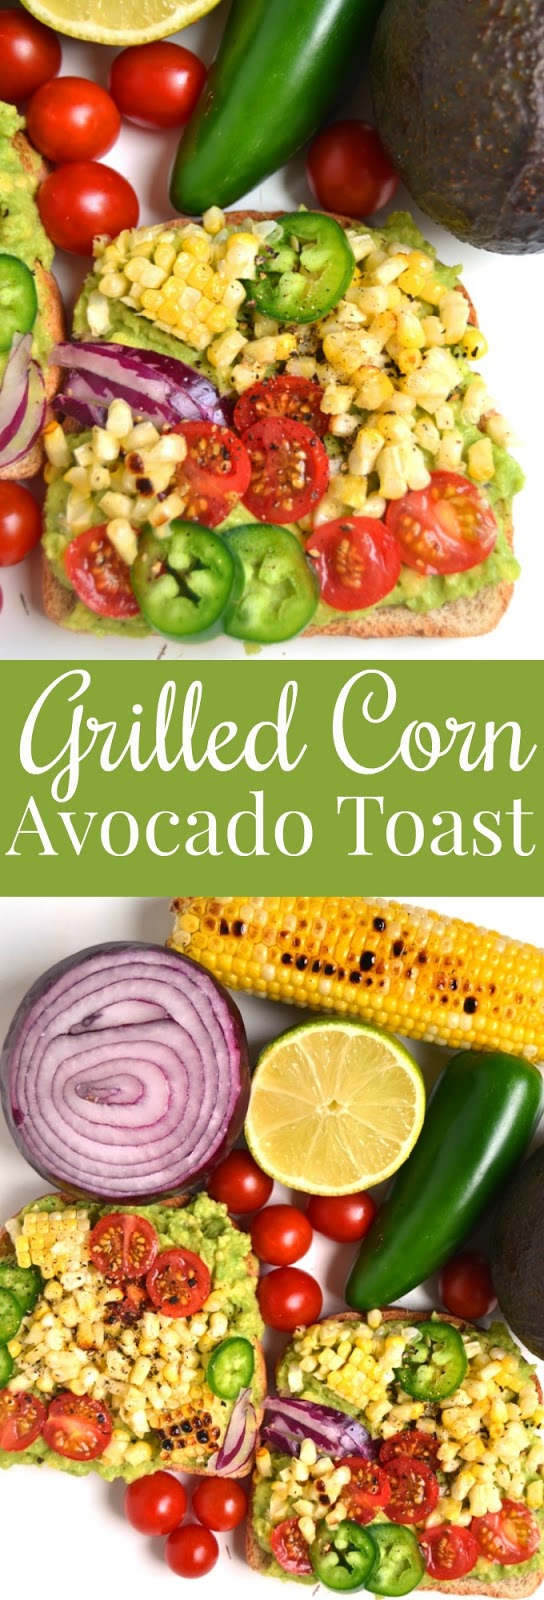 Grilled Corn Avocado Toast features mashed avocado with garlic and lime juice on toast with grilled corn, sliced tomatoes, jalapenos and red onion for a delicious meal or snack! www.nutritionistreviews.com